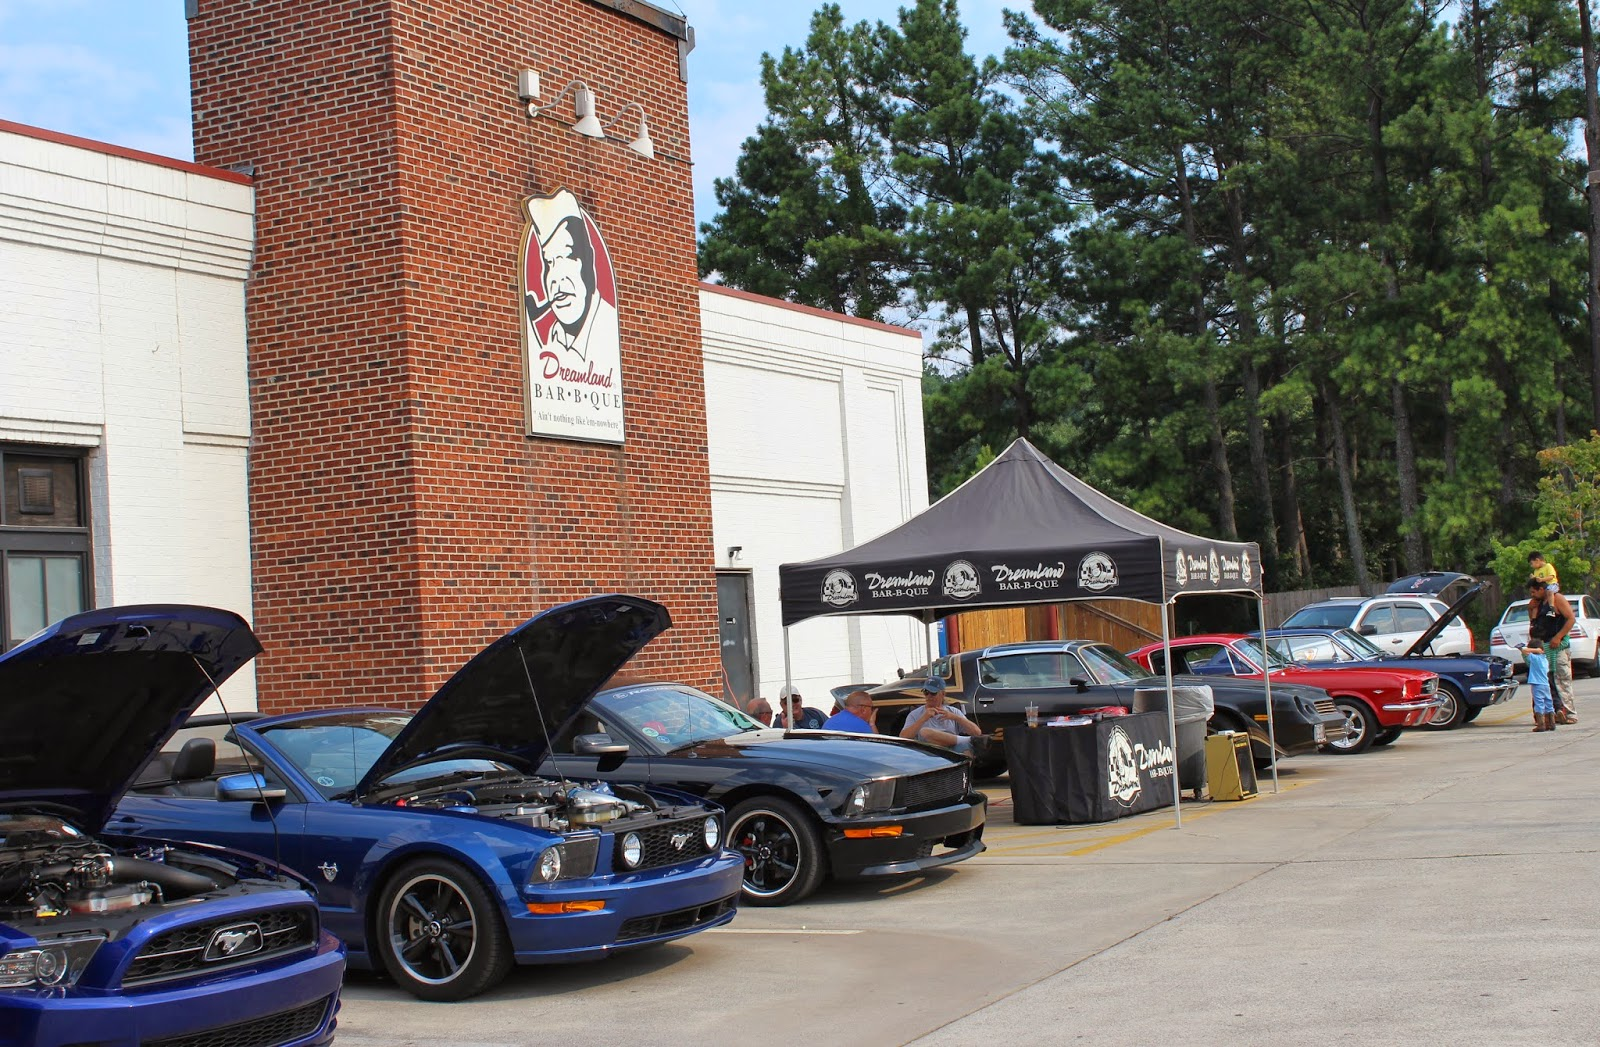 Cars And Coffee Talk Car Show Vs Cruiseinwhats The Difference - Cruise car show